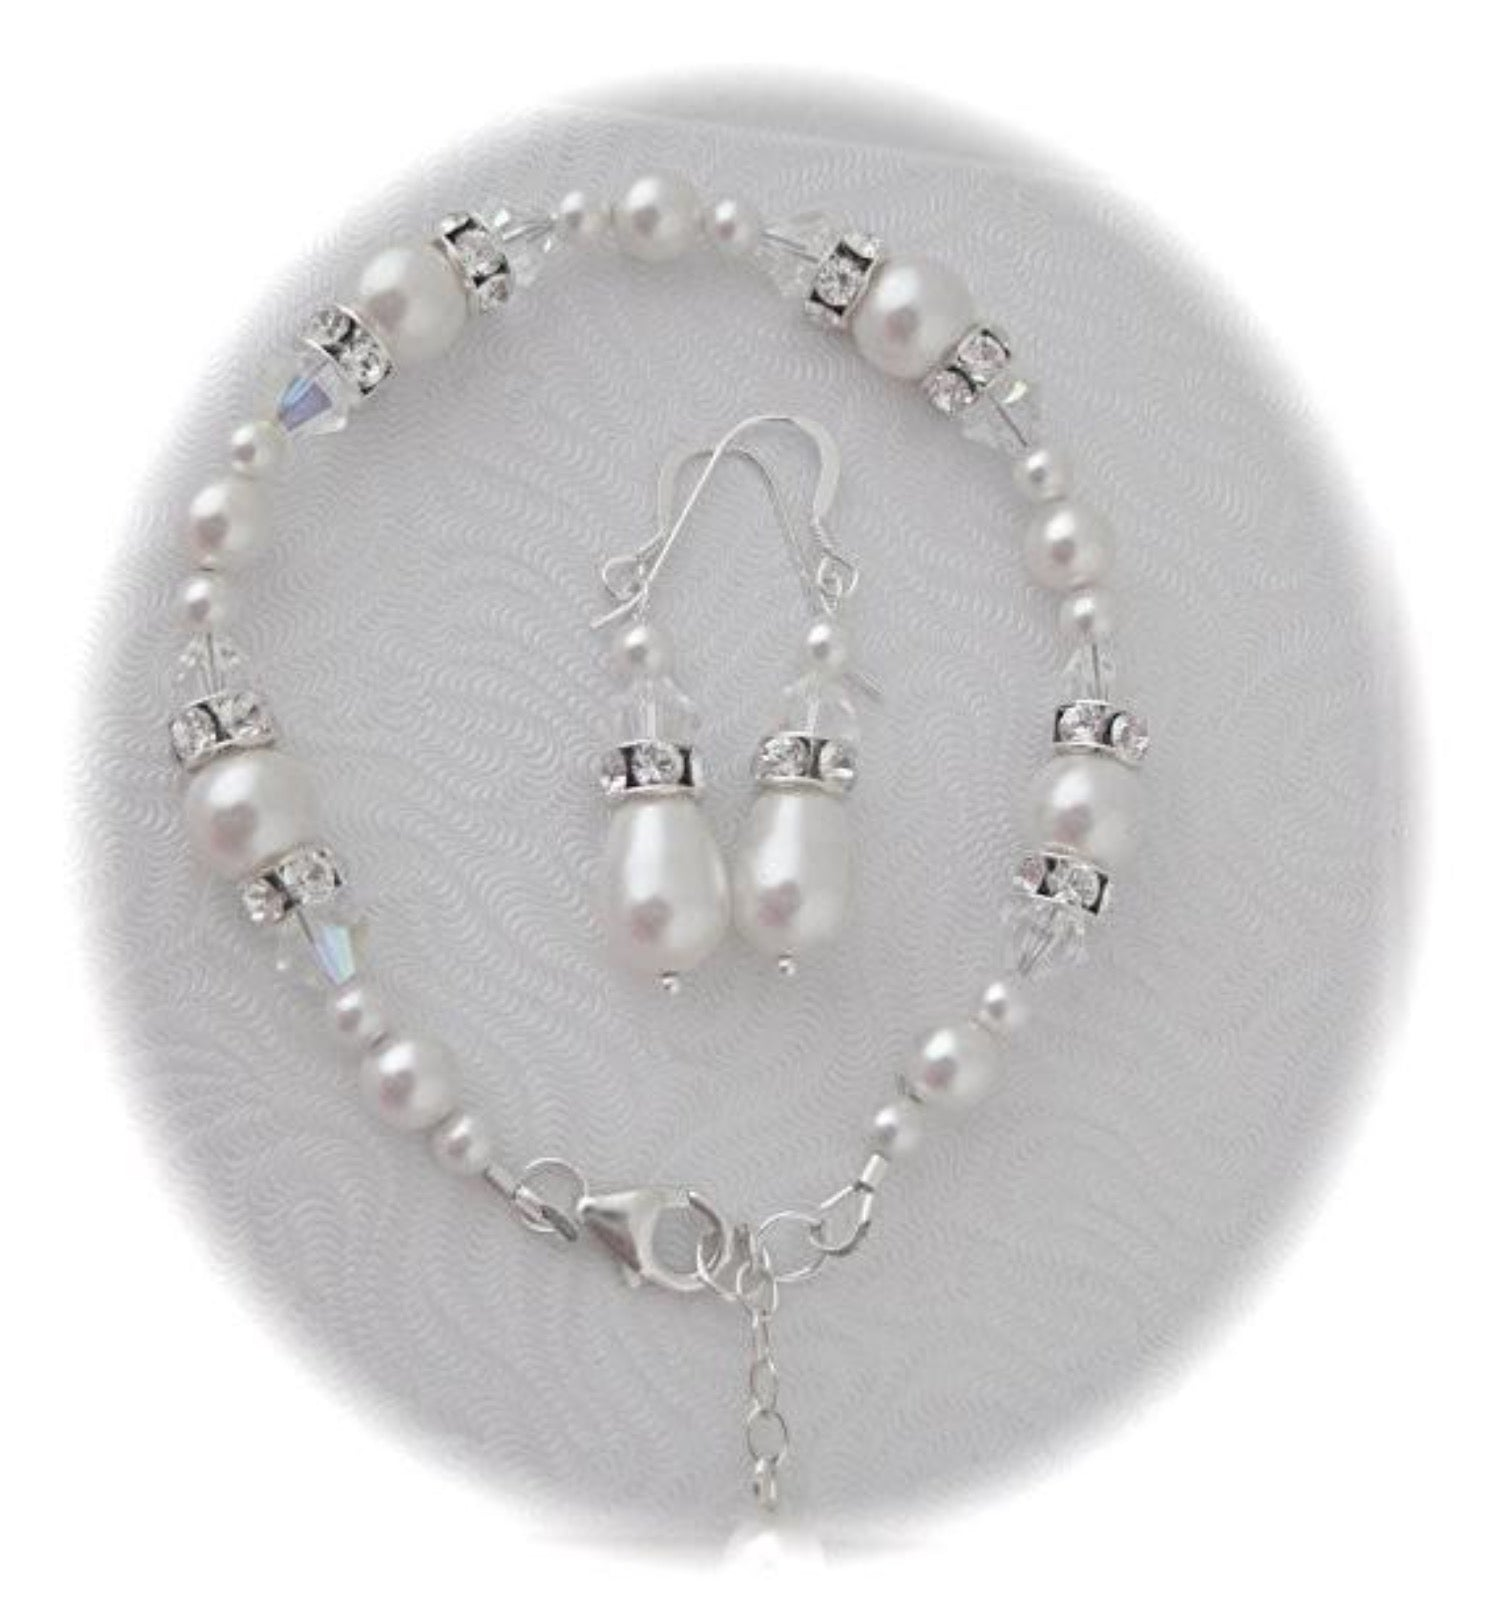 Pearl Necklace, Bracelet and Earring sets for brides - Clairesbridal - 3